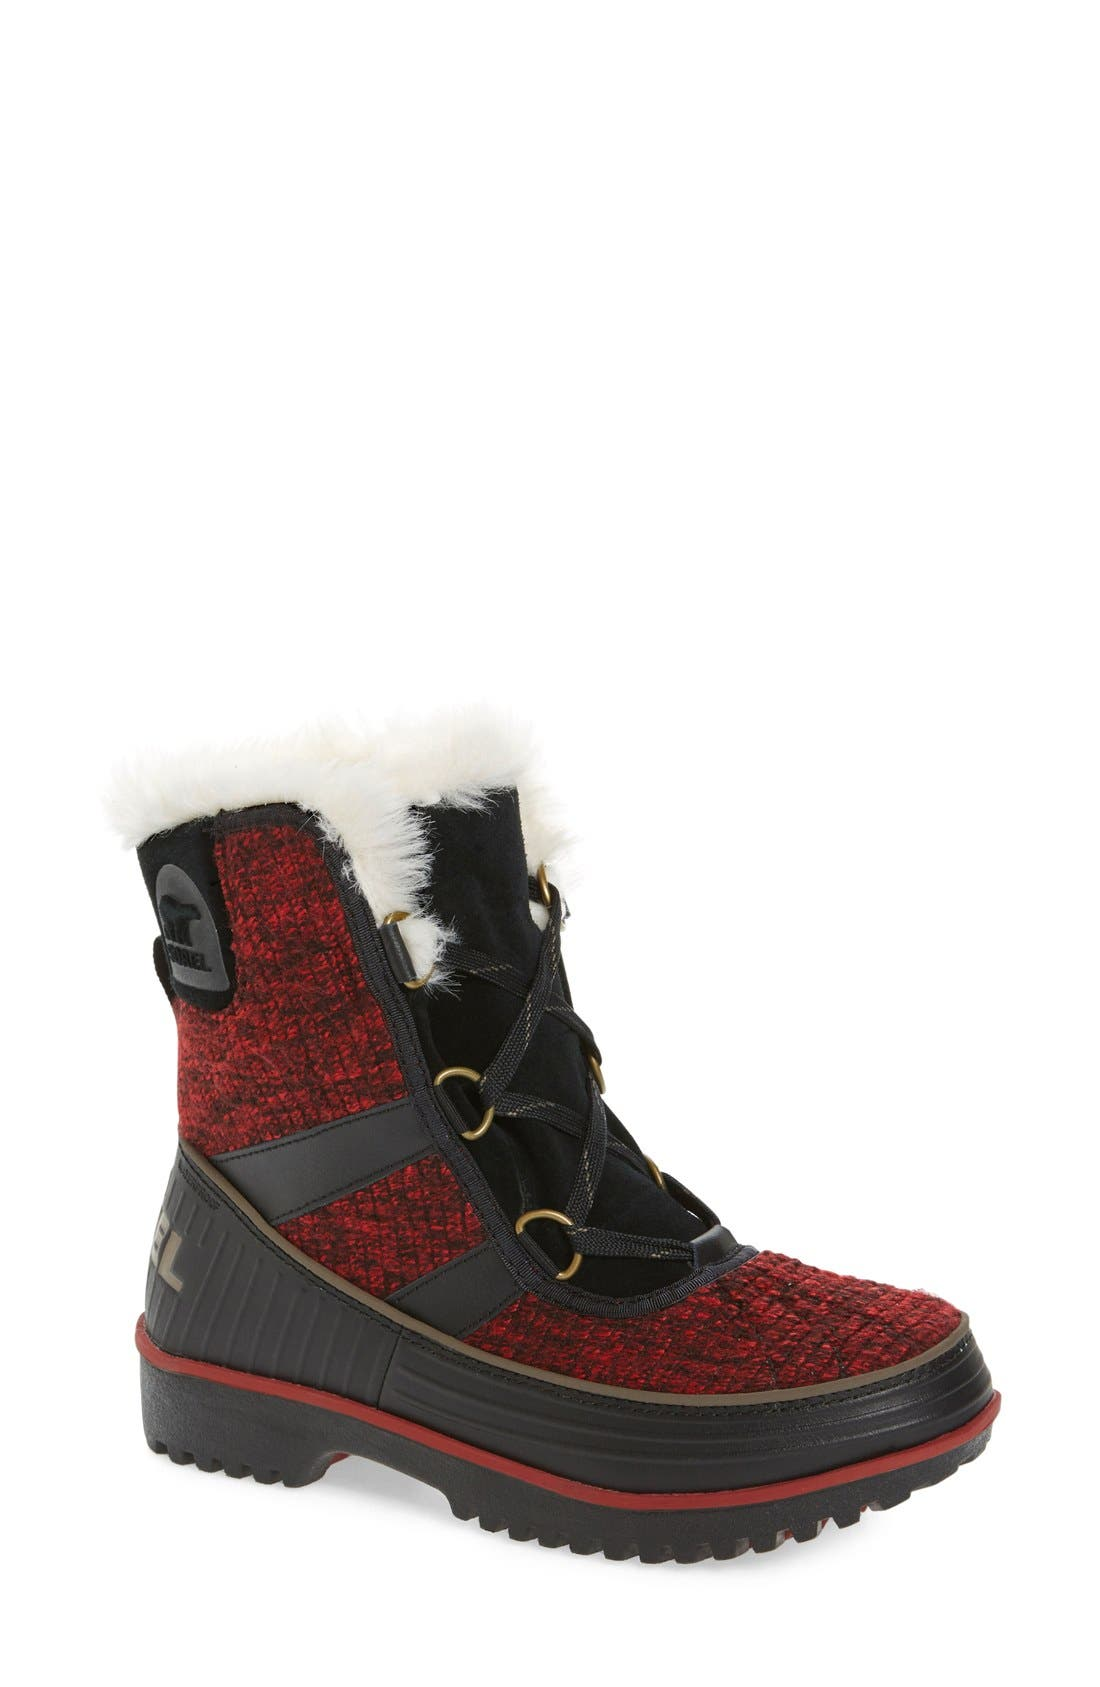 Alternate Image 1 Selected - SOREL 'Tivoli II' Waterproof Boot (Women)